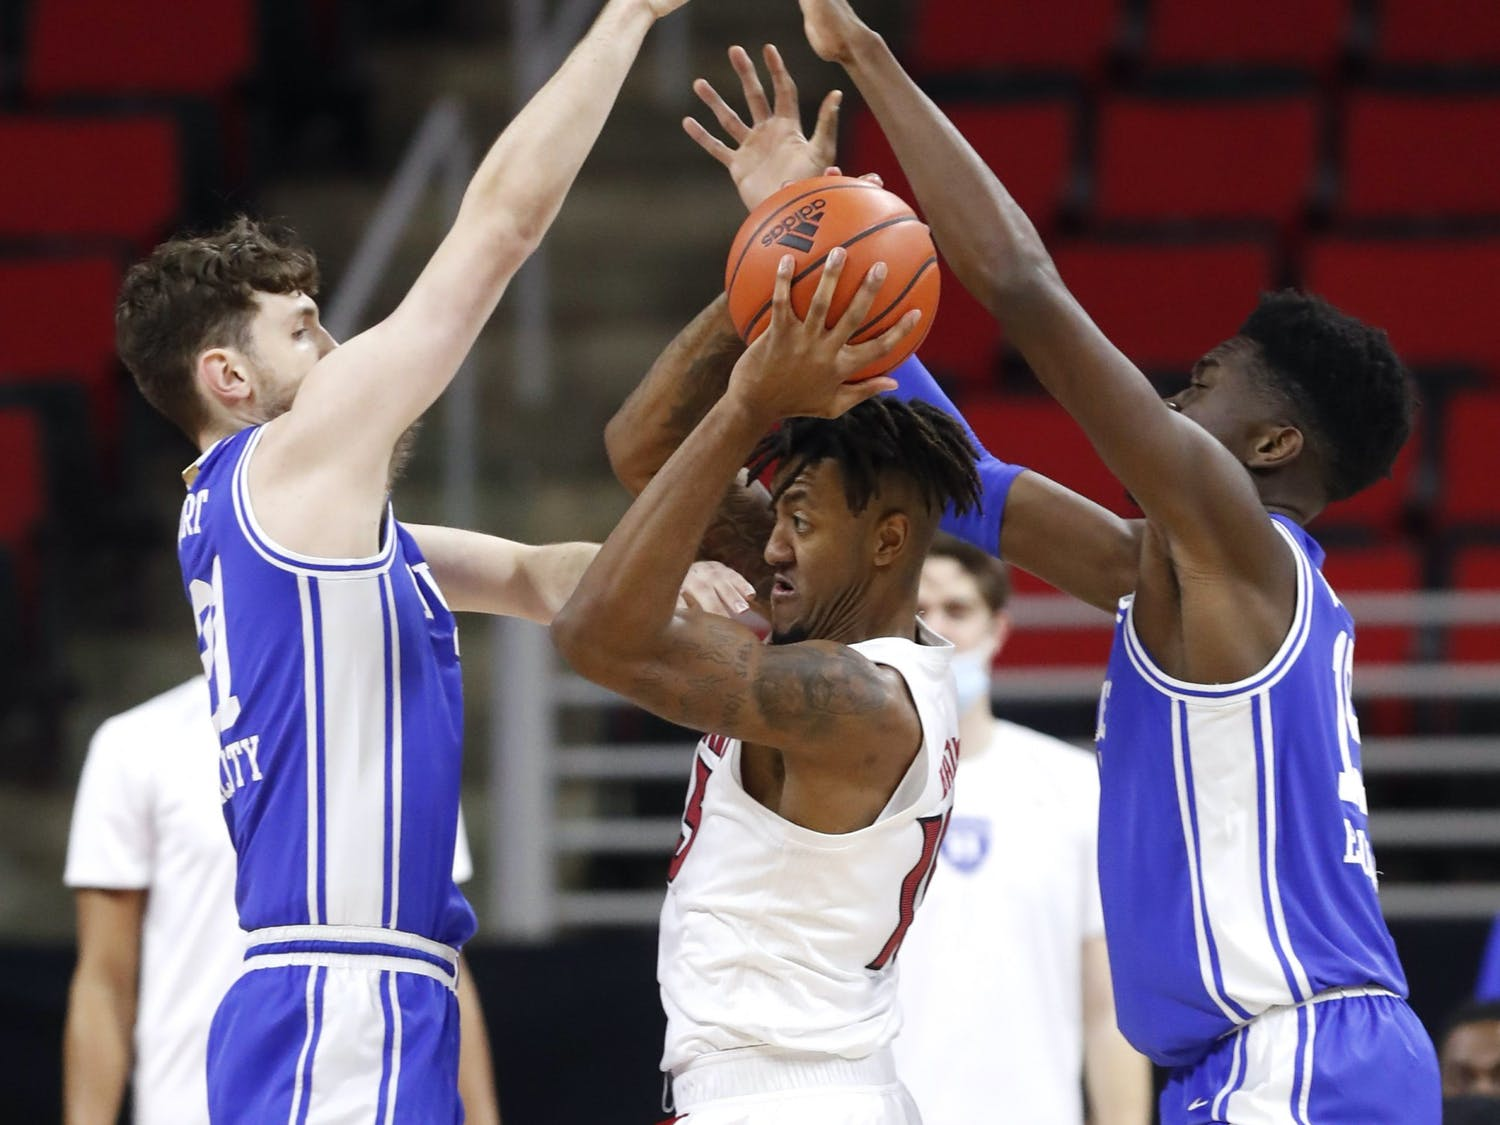 Matthew Hurt (left) and Mark Williams (right) may prove to be the one-two punch Duke needs to sneak its way into the NCAA tournament.